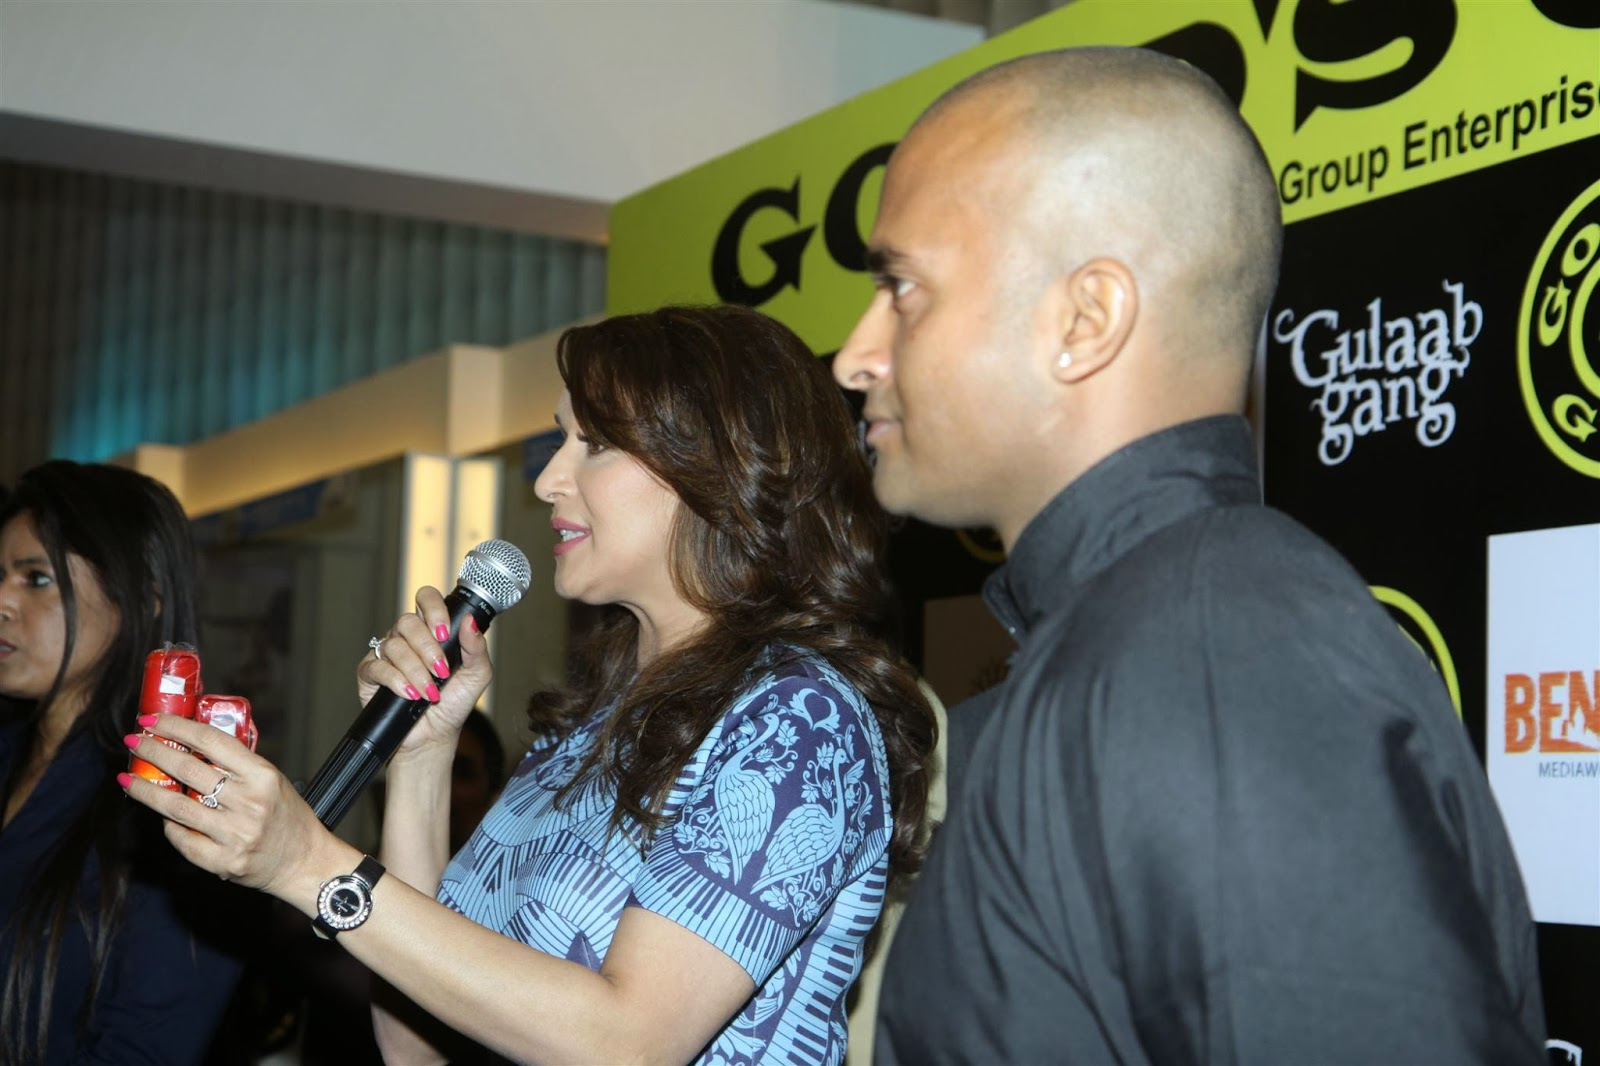 Madhuri Dixit promotes her movie 'Gulaab Gang' at Gold Gym